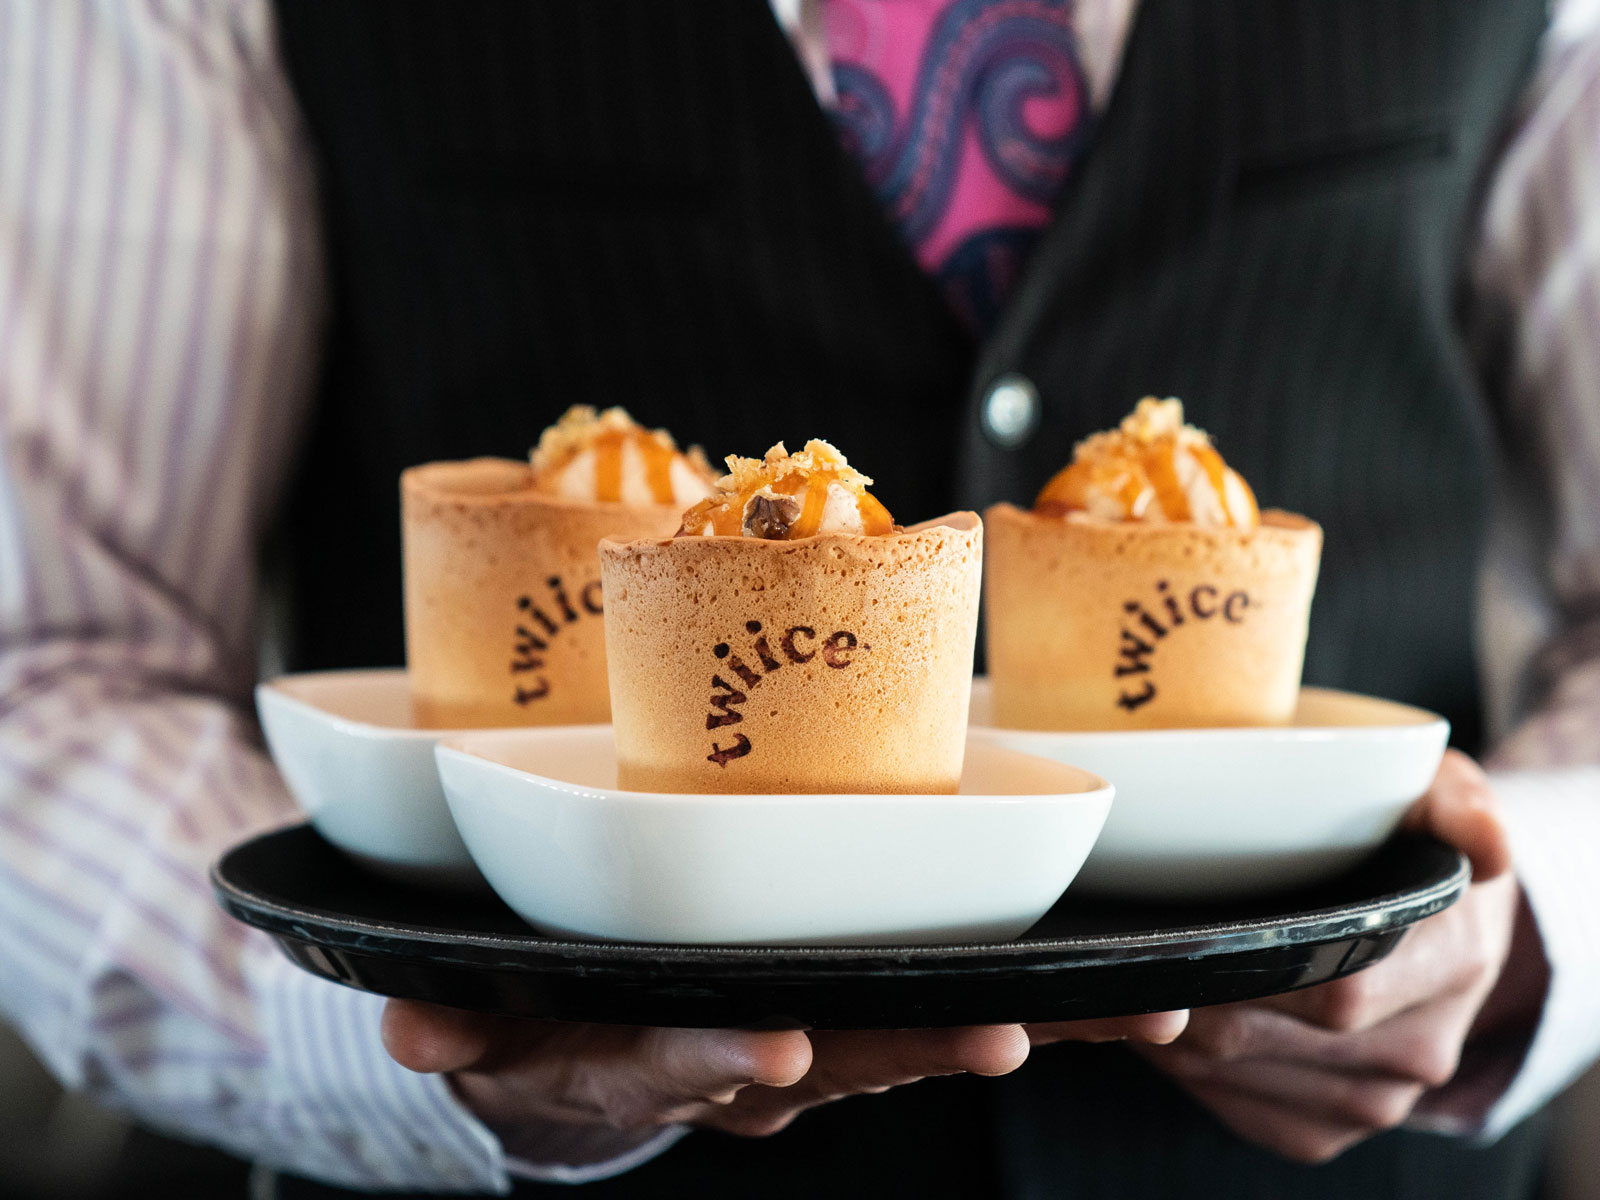 air new zealand edible coffe cups FT BLOG1219